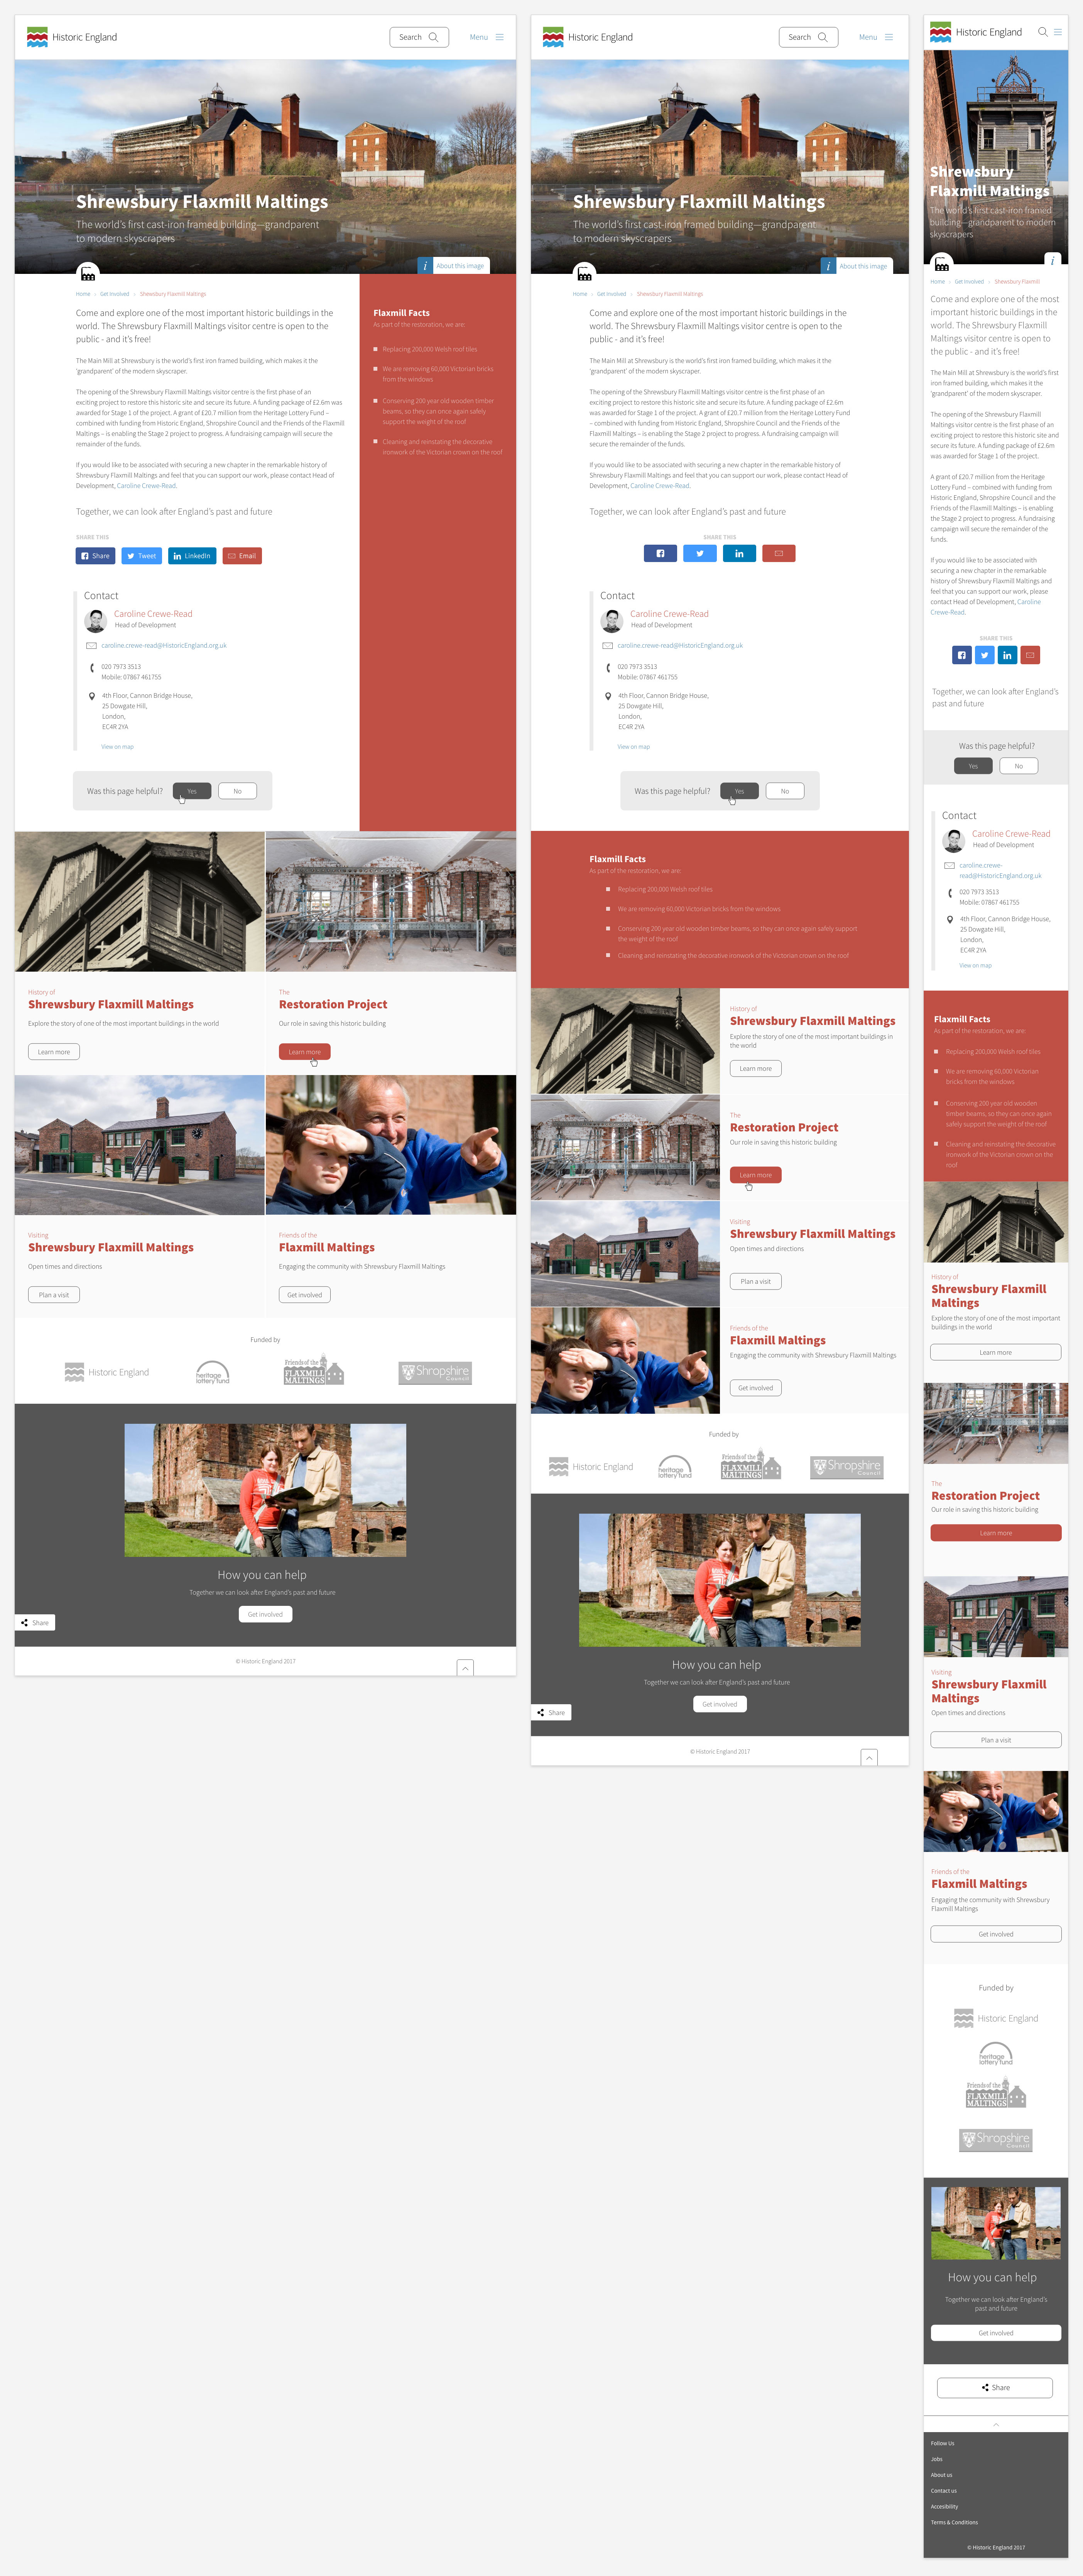 Historic England responsive web design